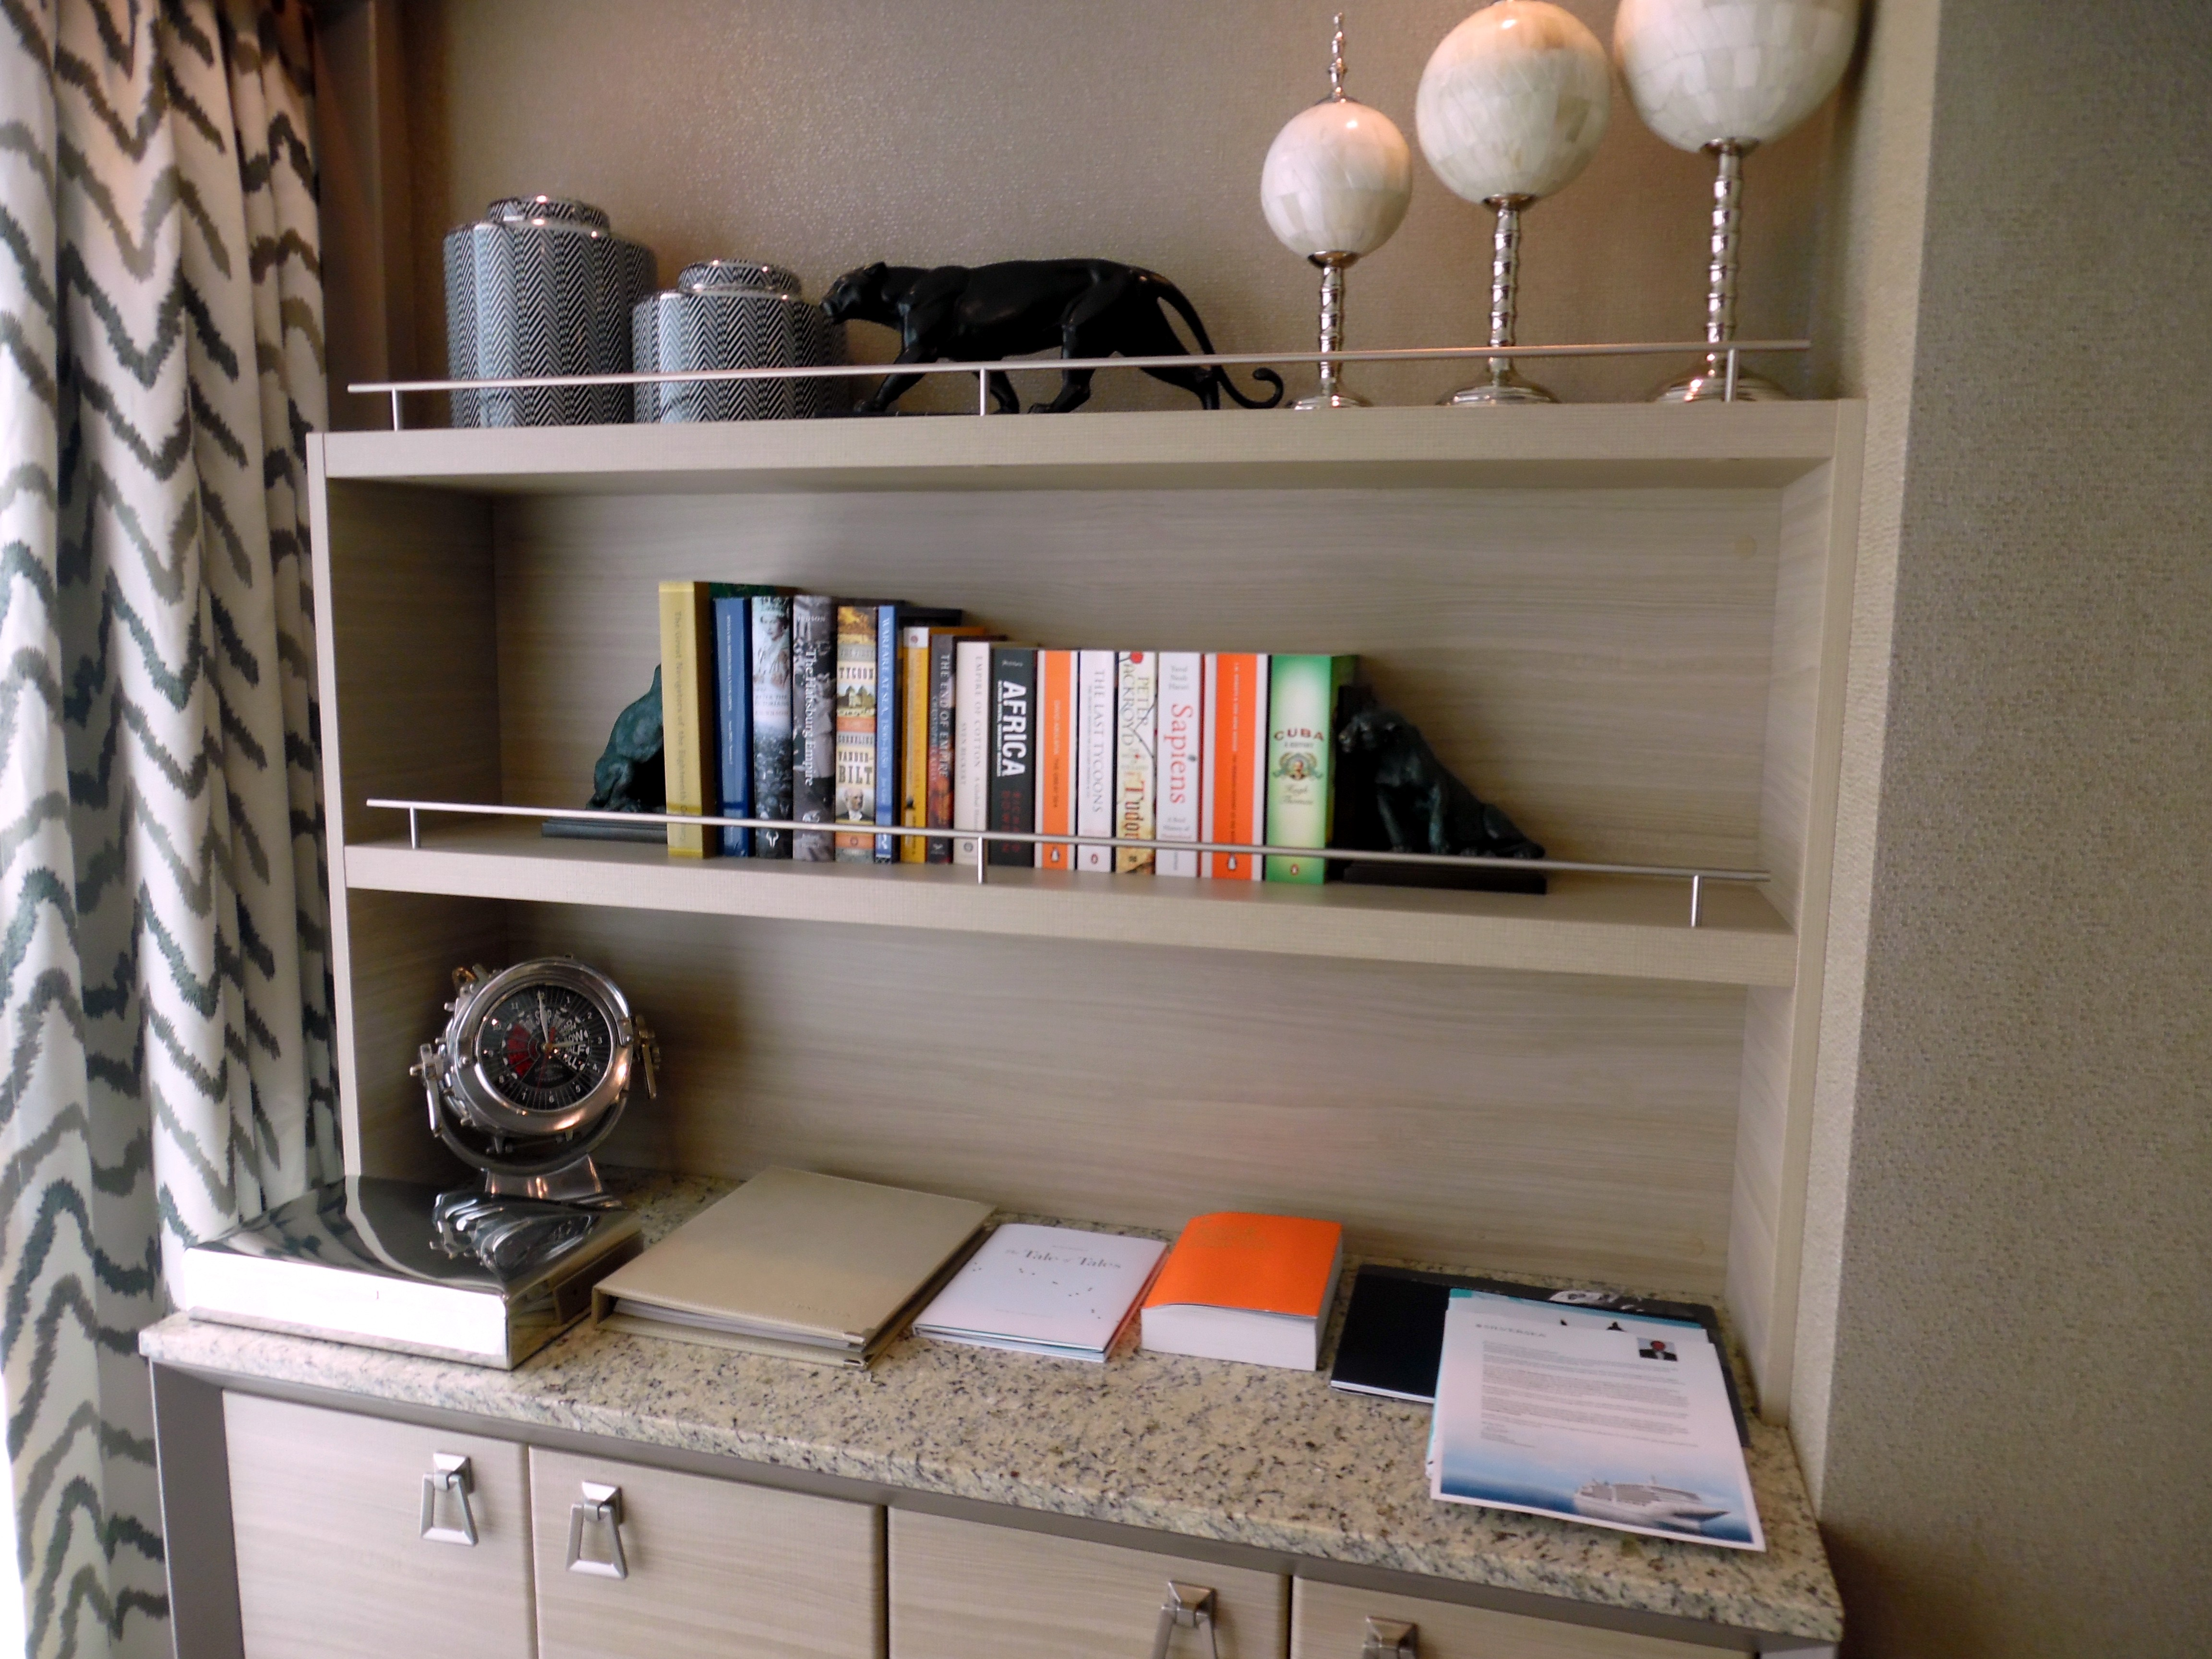 Bookshelves with personal items and books from the Rome home of Manfredi Lefebvre